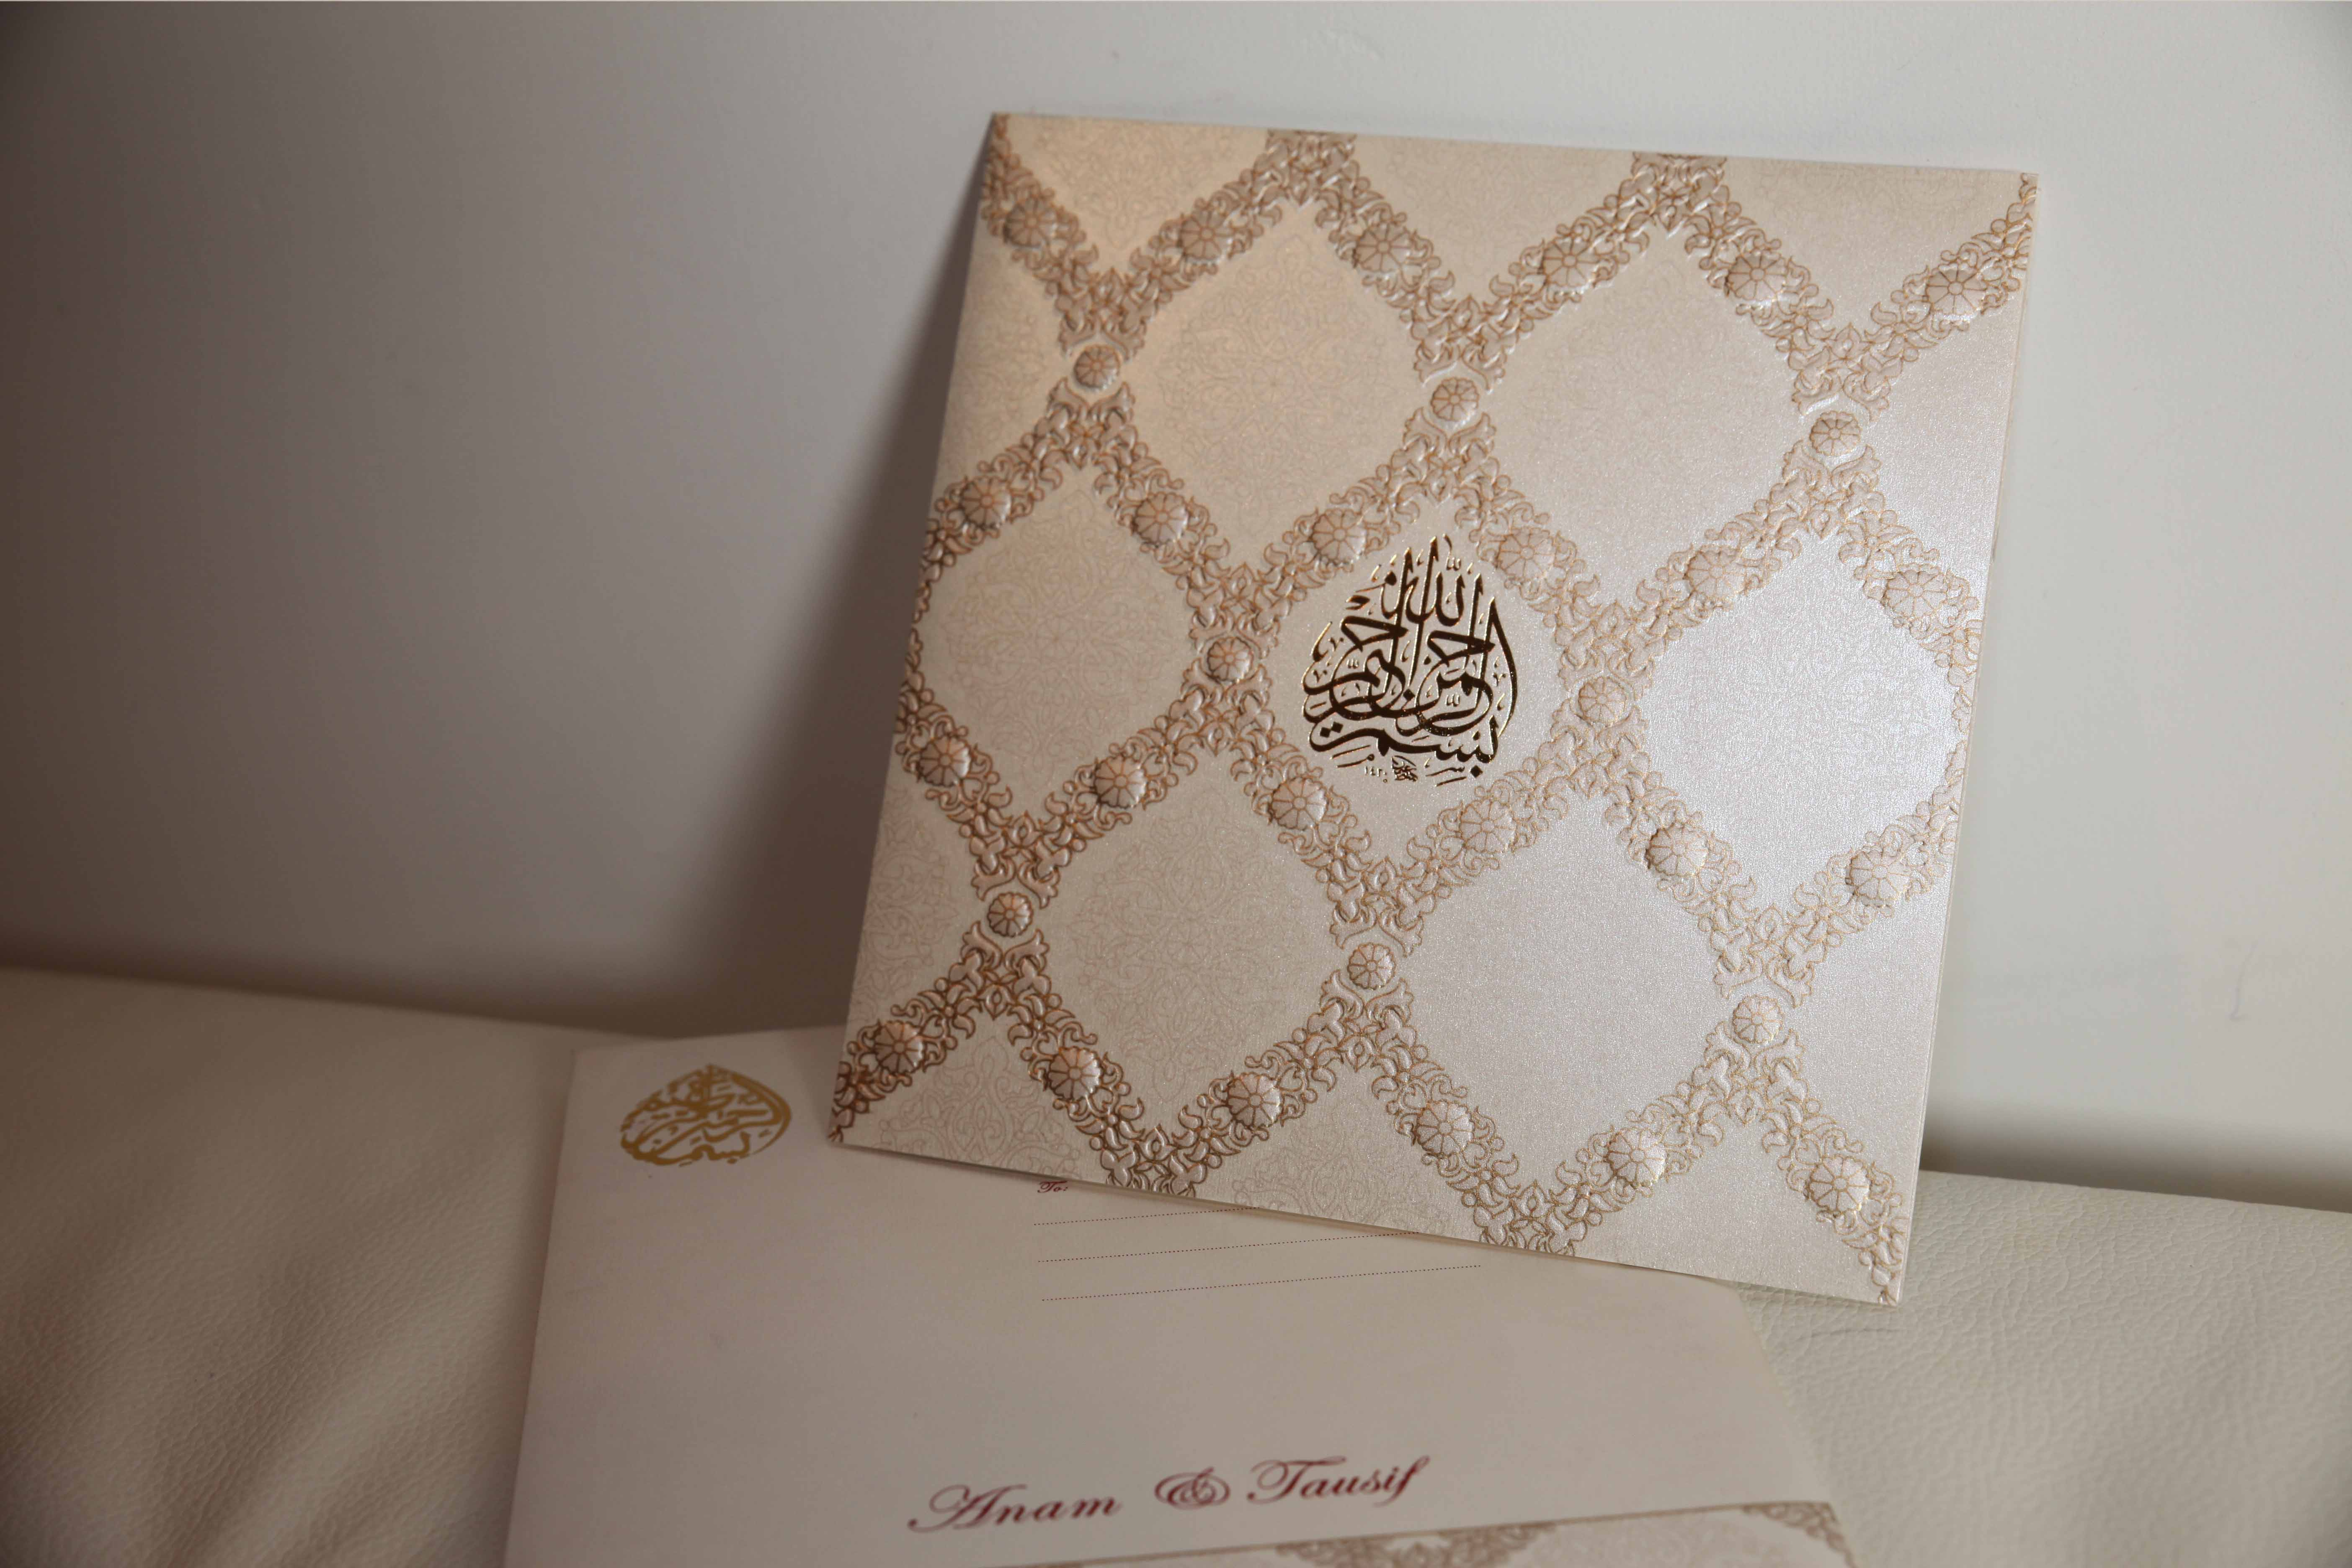 Muslim wedding Cards is a well known brand in the UK